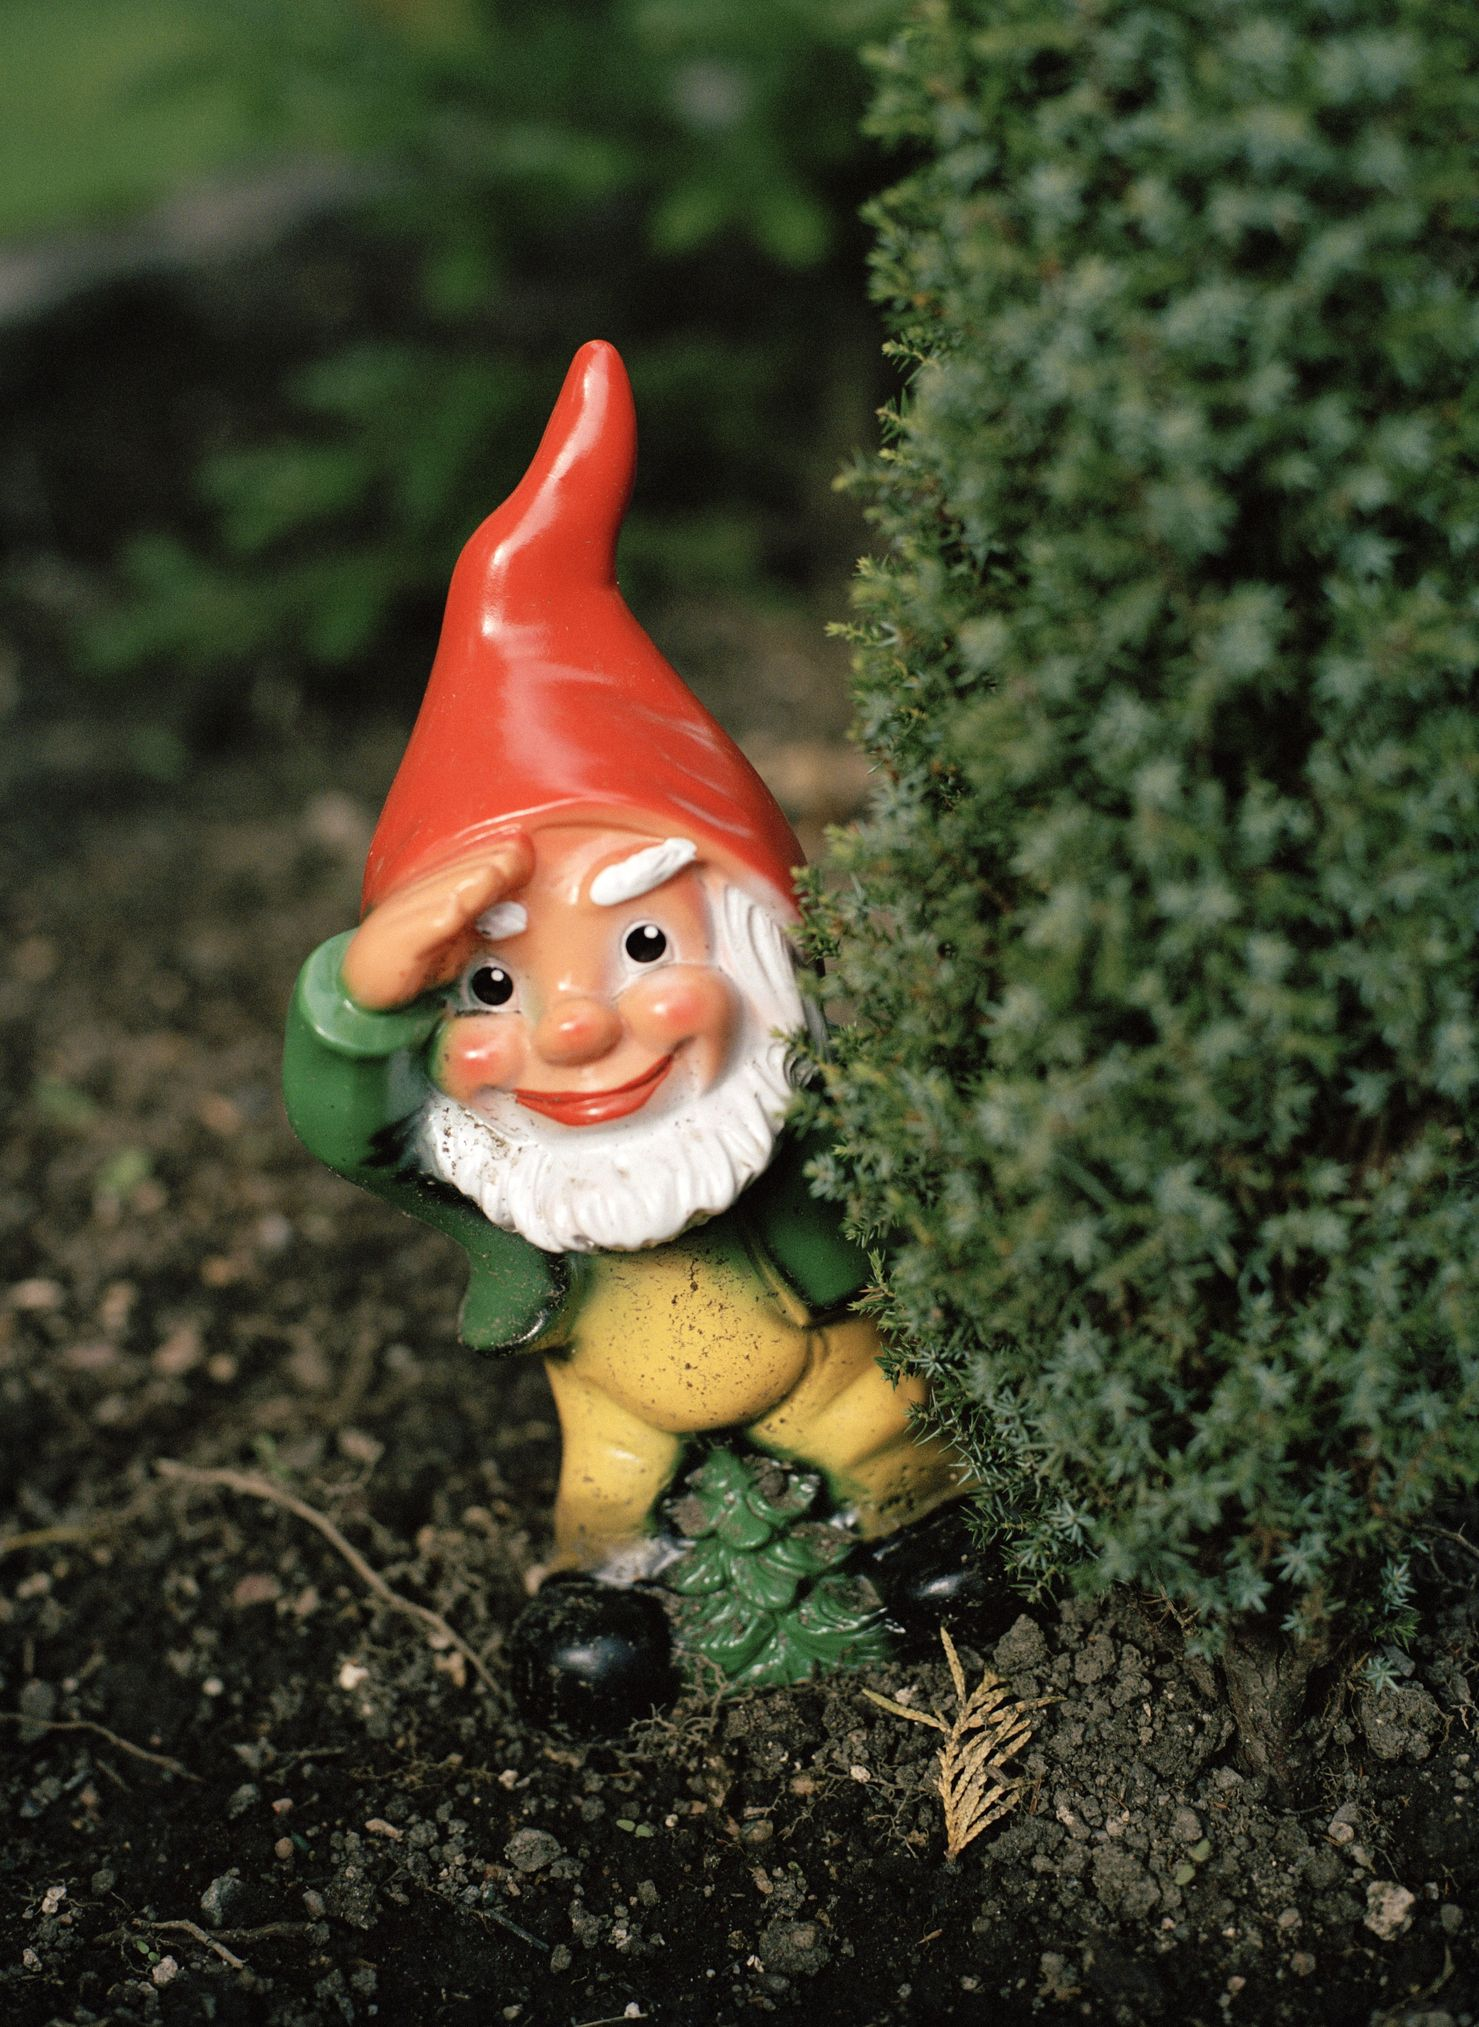 Sales of garden gnomes rose by 11% this year, reveals eBay